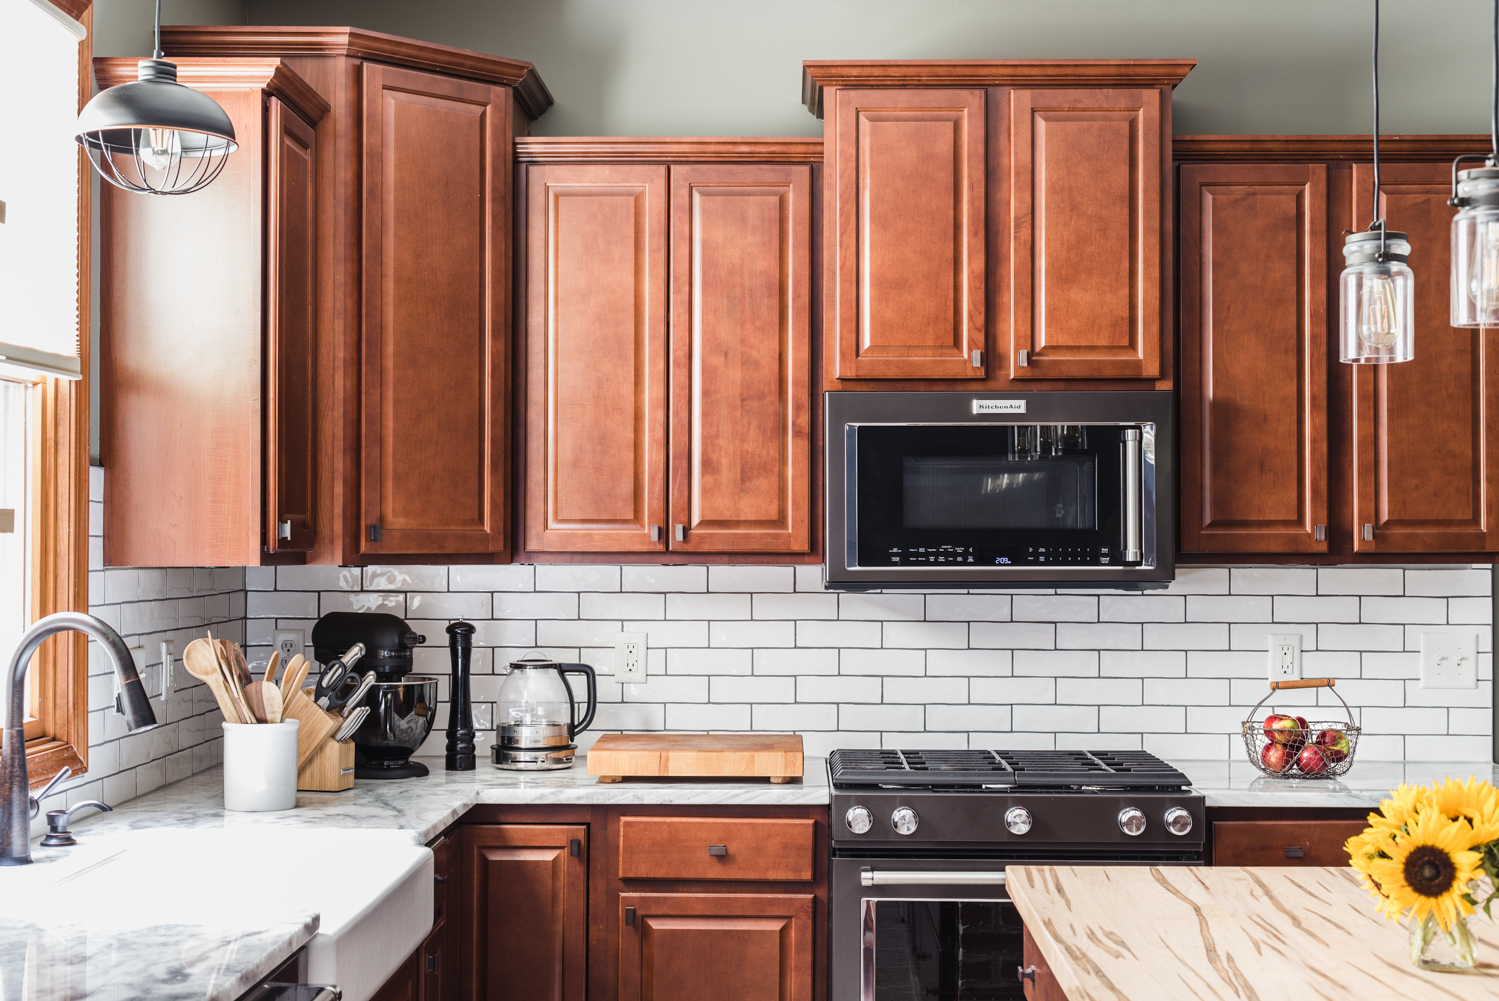 black stainless appliances in kitchen with white subway tile